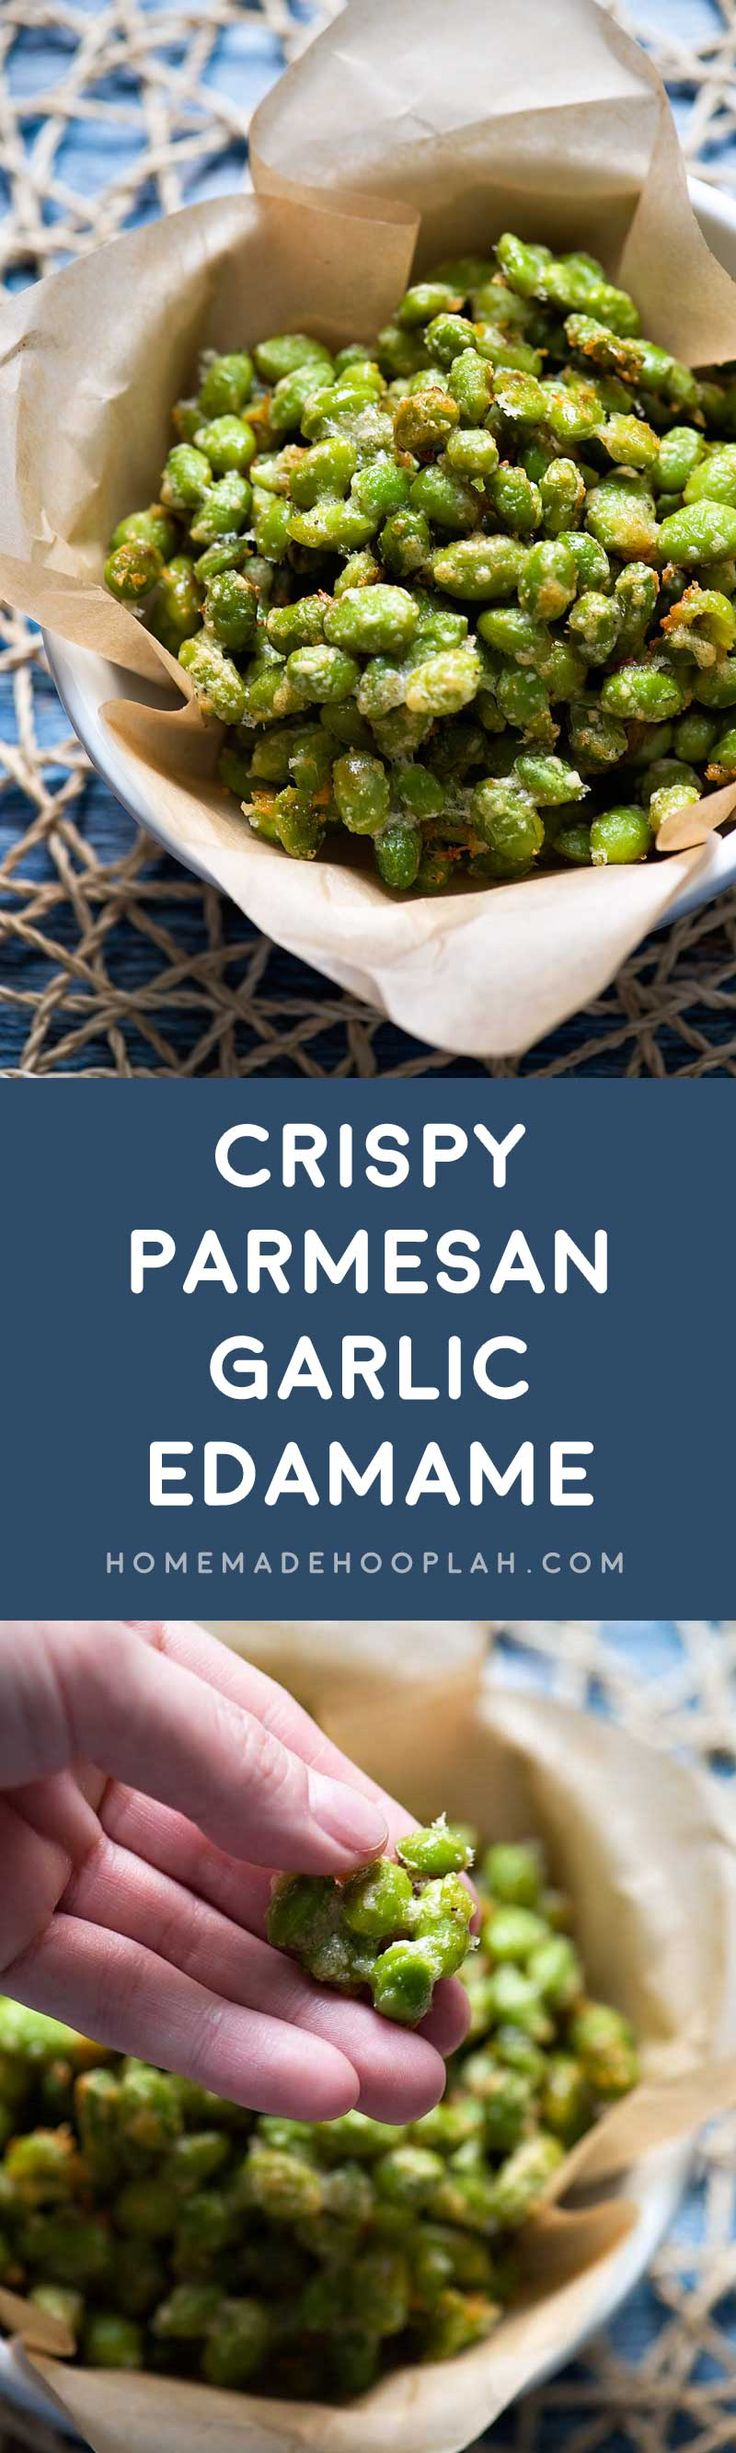 Crispy Parmesan Garlic Edamame! Baked in the oven, this edamame recipe is a tasty snack with only 123 calories! A filling food that will help you reach your weight goals. | HomemadeHooplah.com